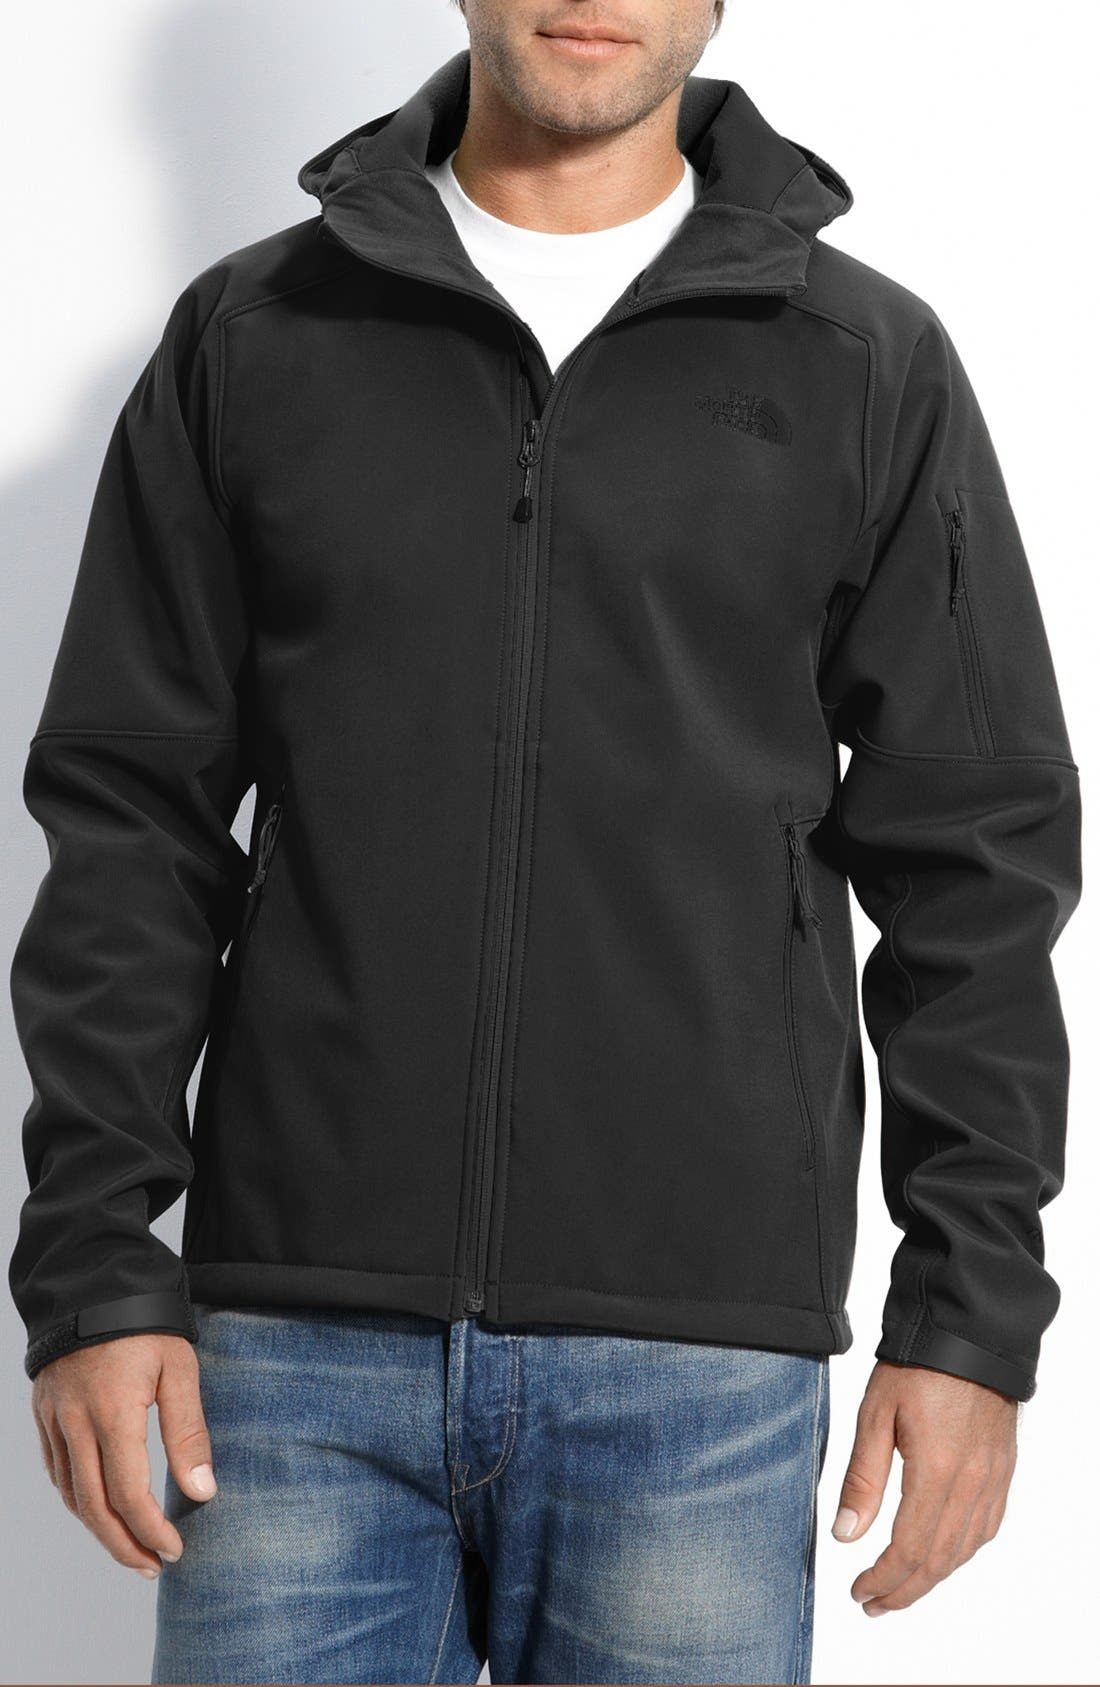 Alternate Image 1 Selected - The North Face 'Apex Android' Hoodie